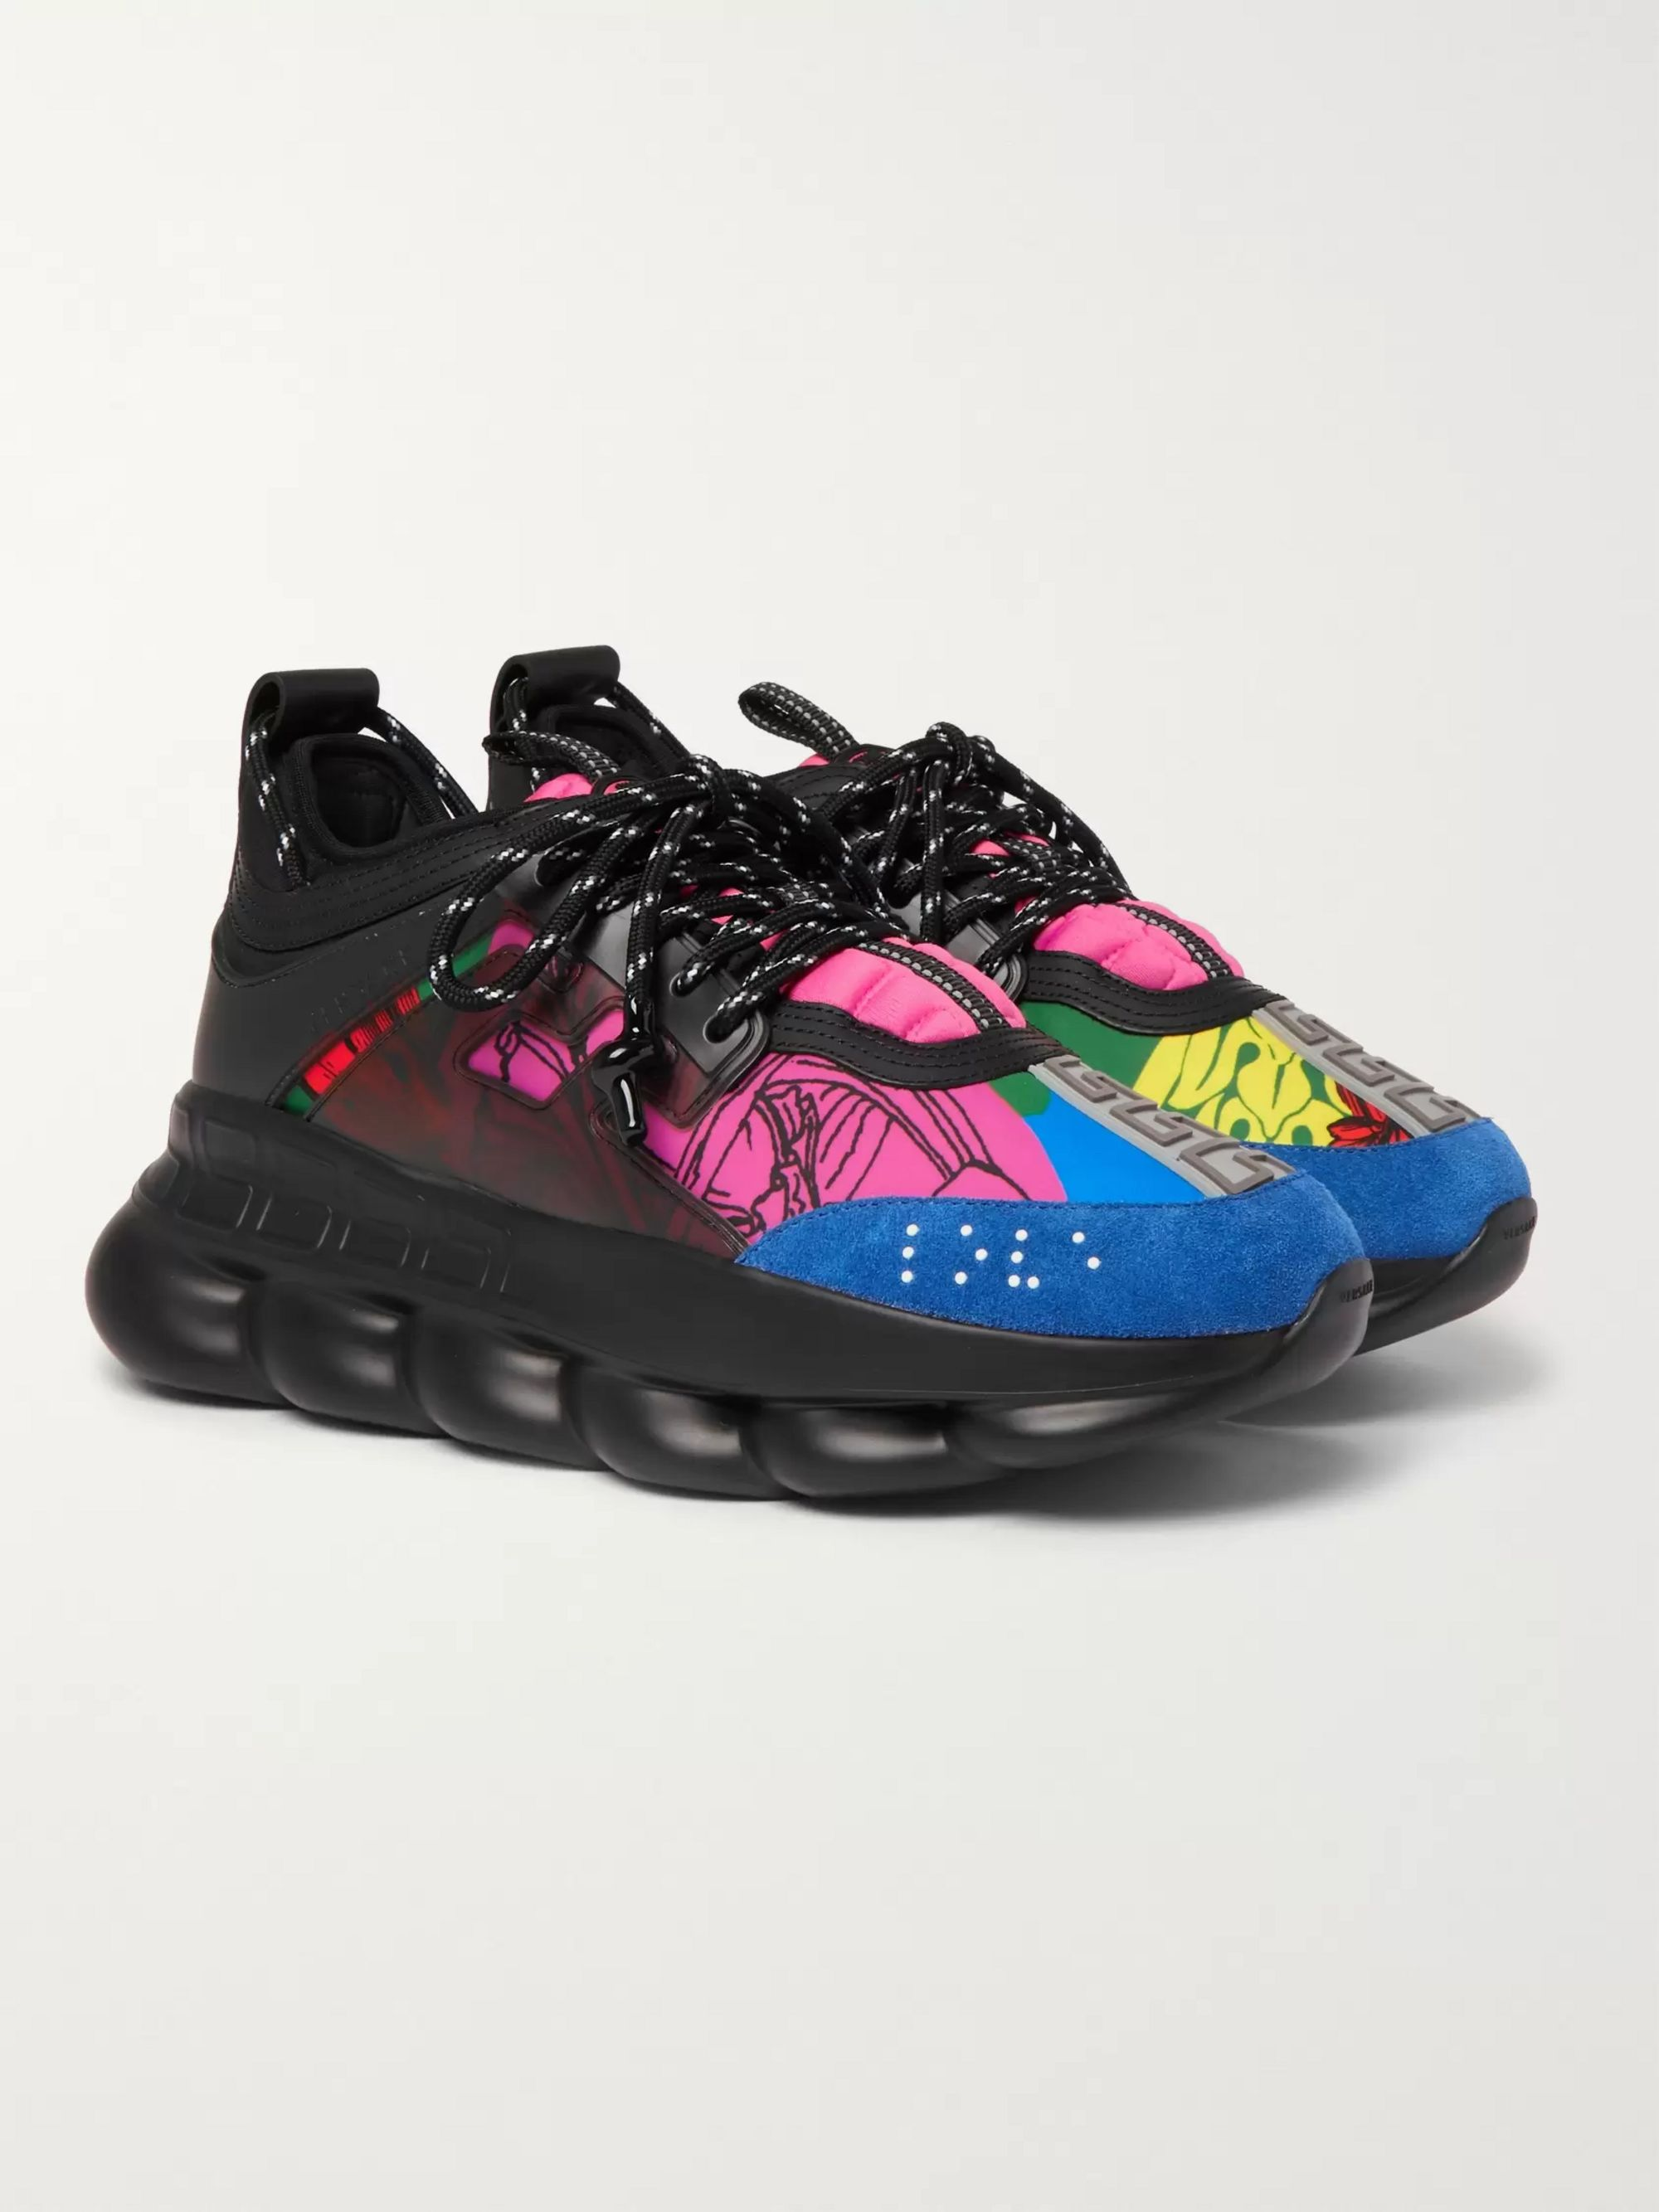 VERSACE Chain Reaction Sneakers in Multi | FWRD | Chaussure